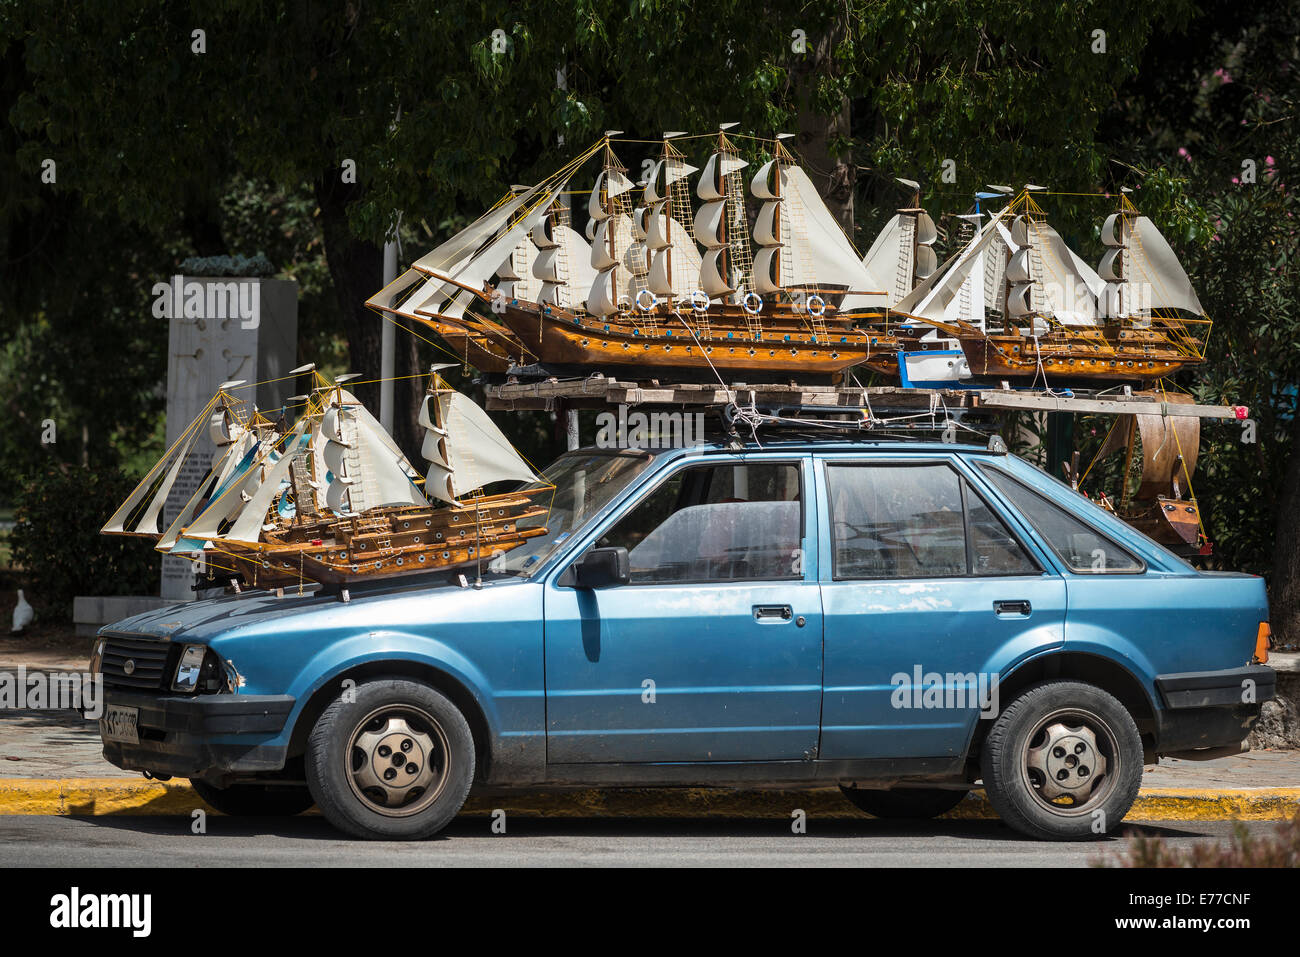 Model sailing ships for sale atop a car in the town of Kalamata, Messenia, Peloponnese, Greece - Stock Image